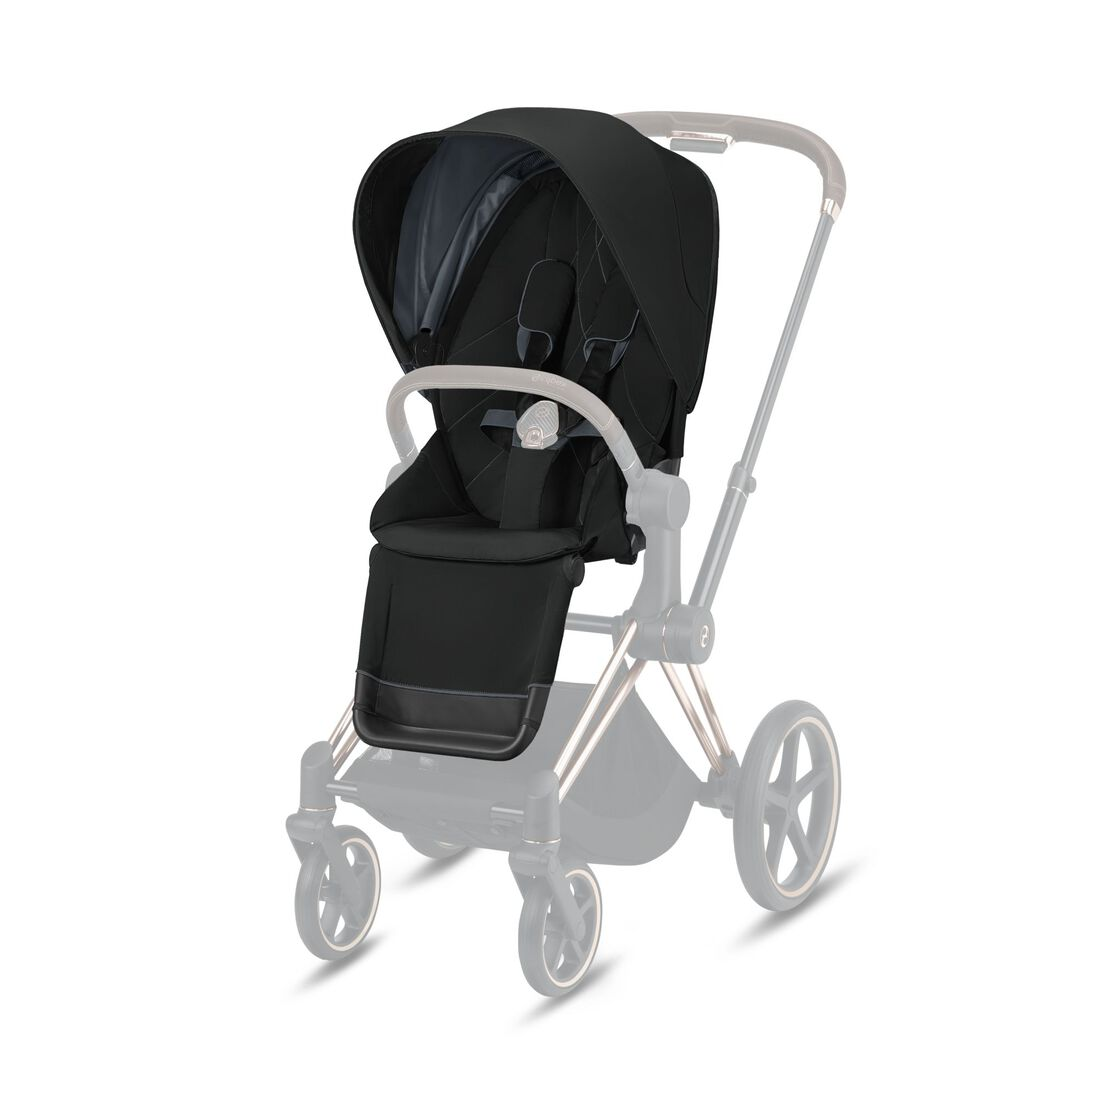 CYBEX Configure Priam Set: Frame, Lux Carry Cot, Cloud Z i-Size, Seat Pack in  large image number 8